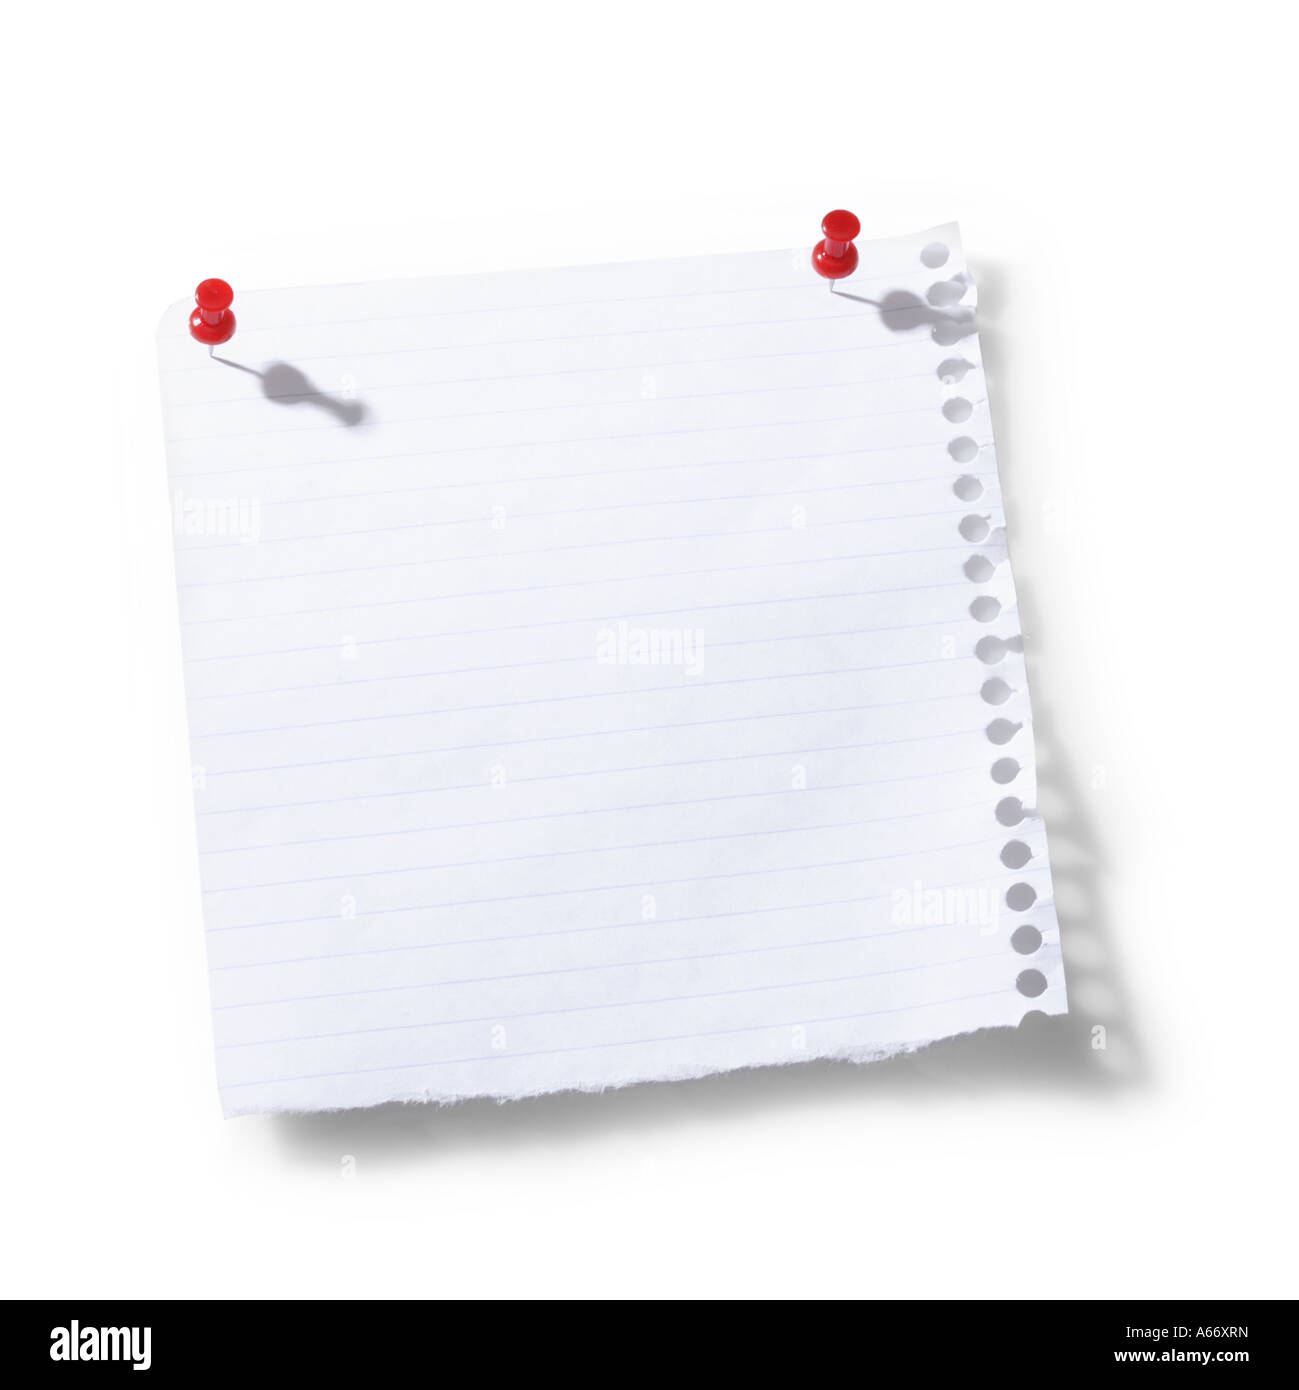 Scrap paper with tacks cut out on white background - Stock Image